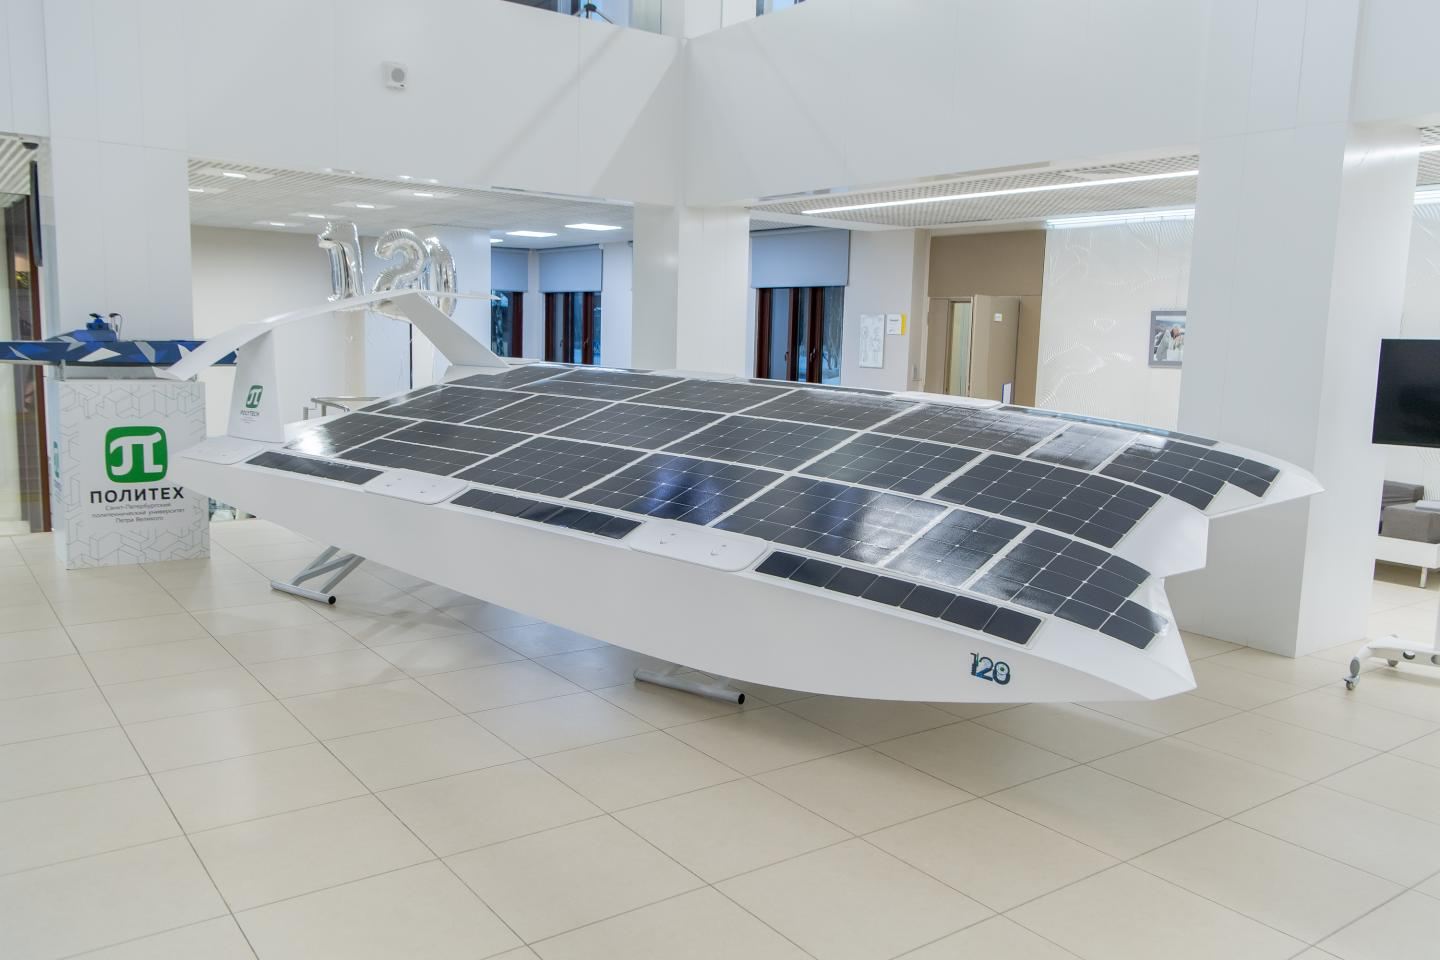 Engineers Invented the First Unmanned Solar Wing-In-Ground-Effect Vehicle